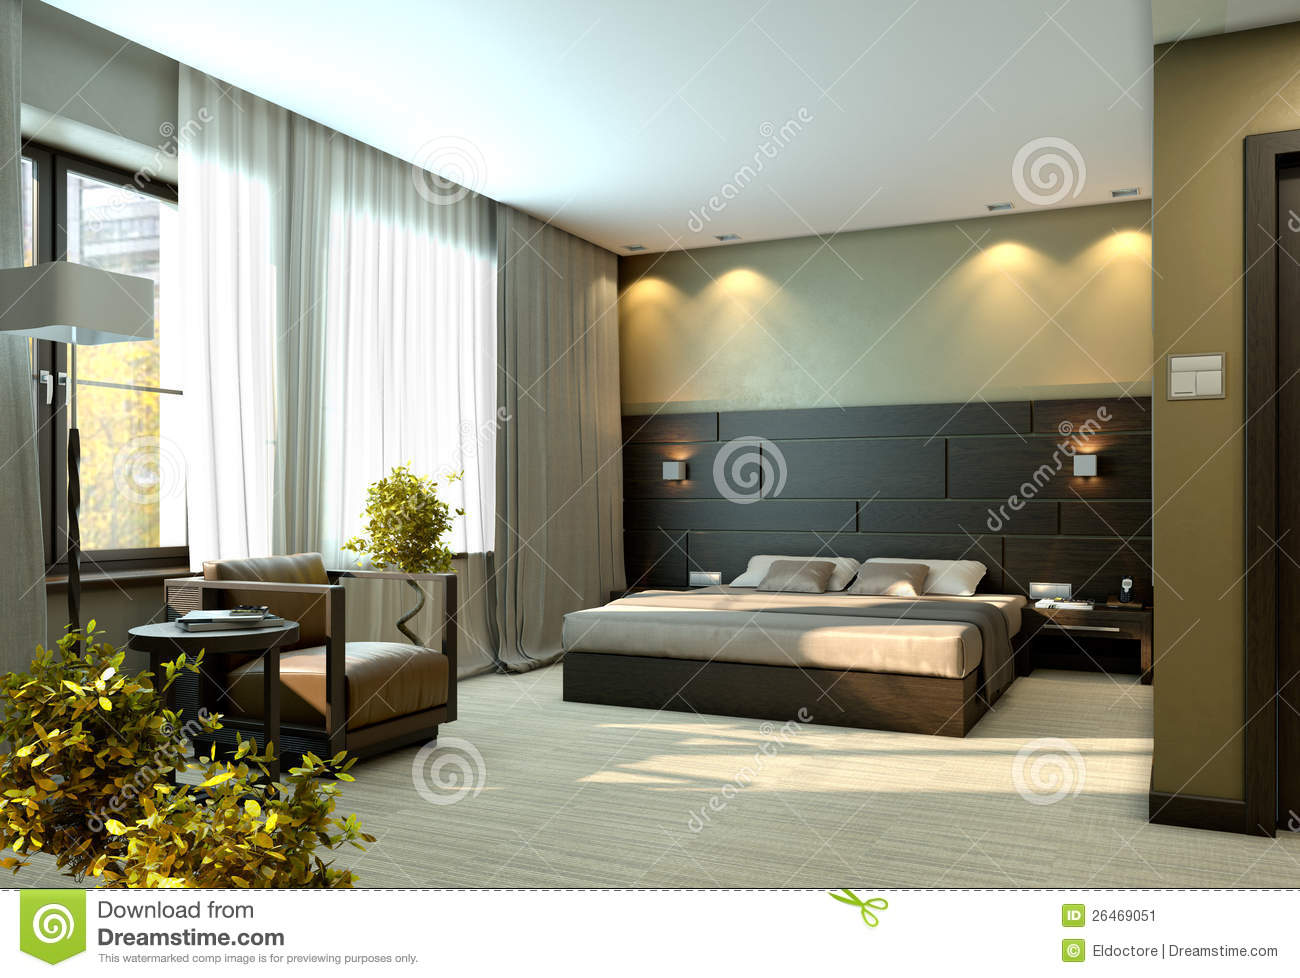 Chambre coucher beige de luxe moderne image stock for Chambre a coucher hotel